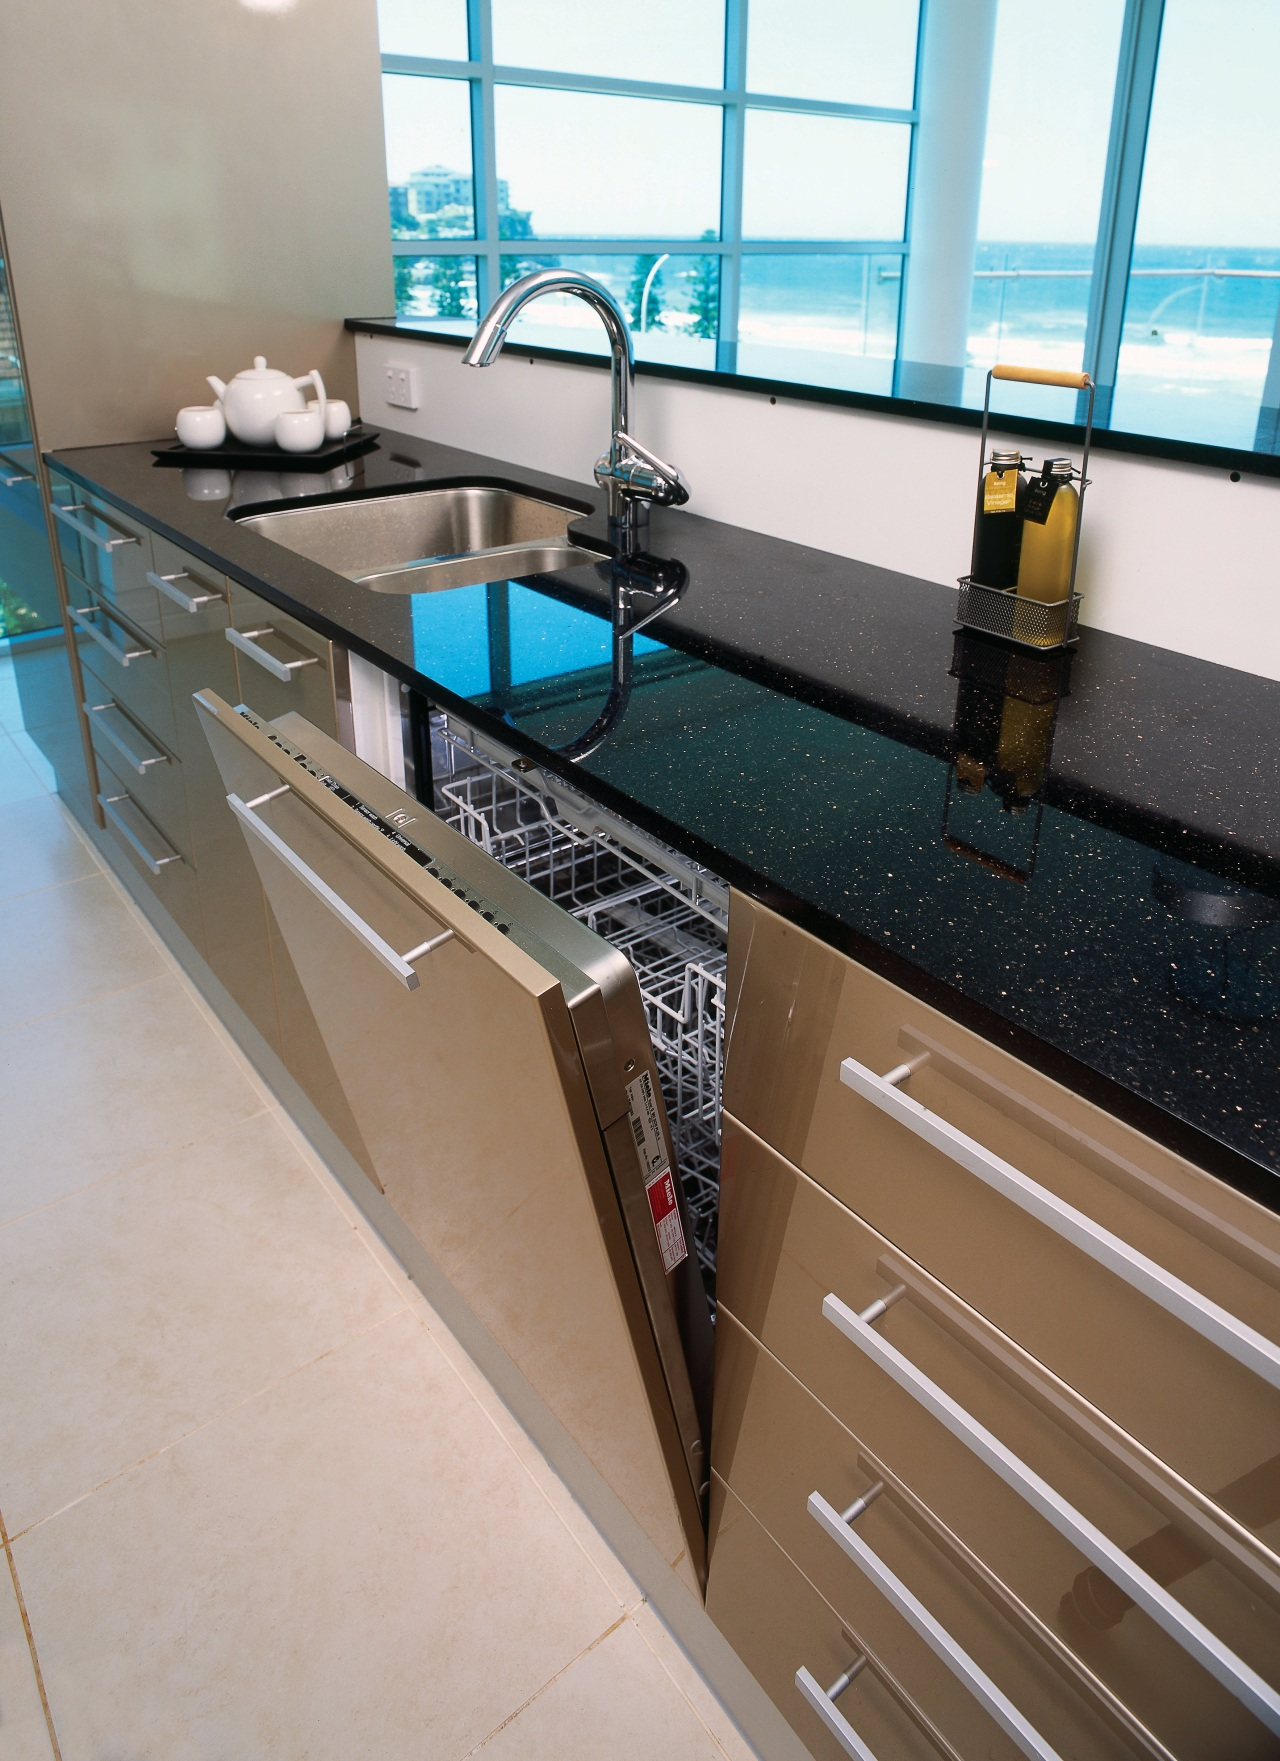 view of this colour coordinated dishwasher countertop, floor, interior design, kitchen, sink, gray